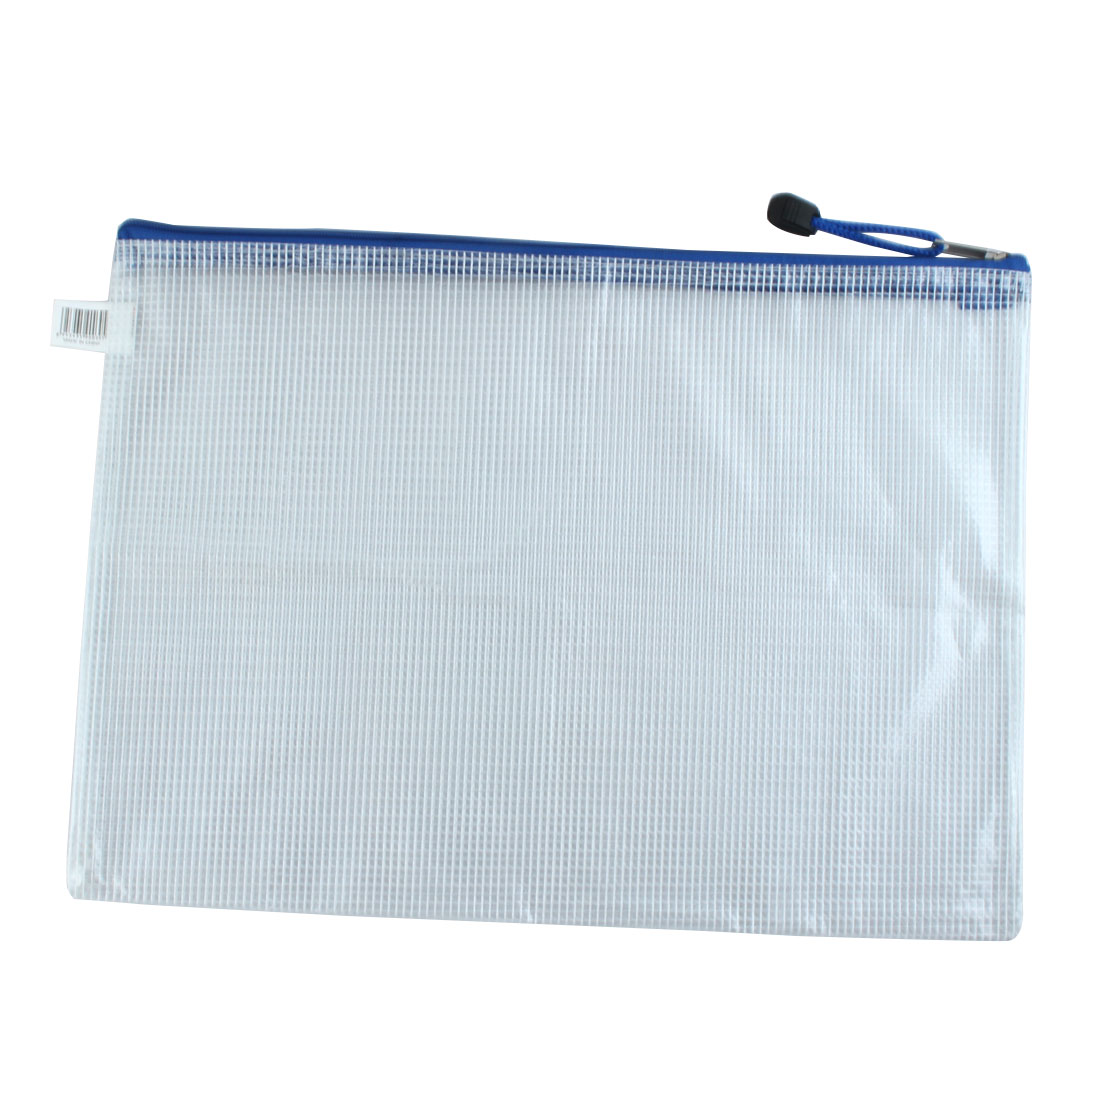 Waterproof Net Pattern File Folder Document Bag w/ Zipper